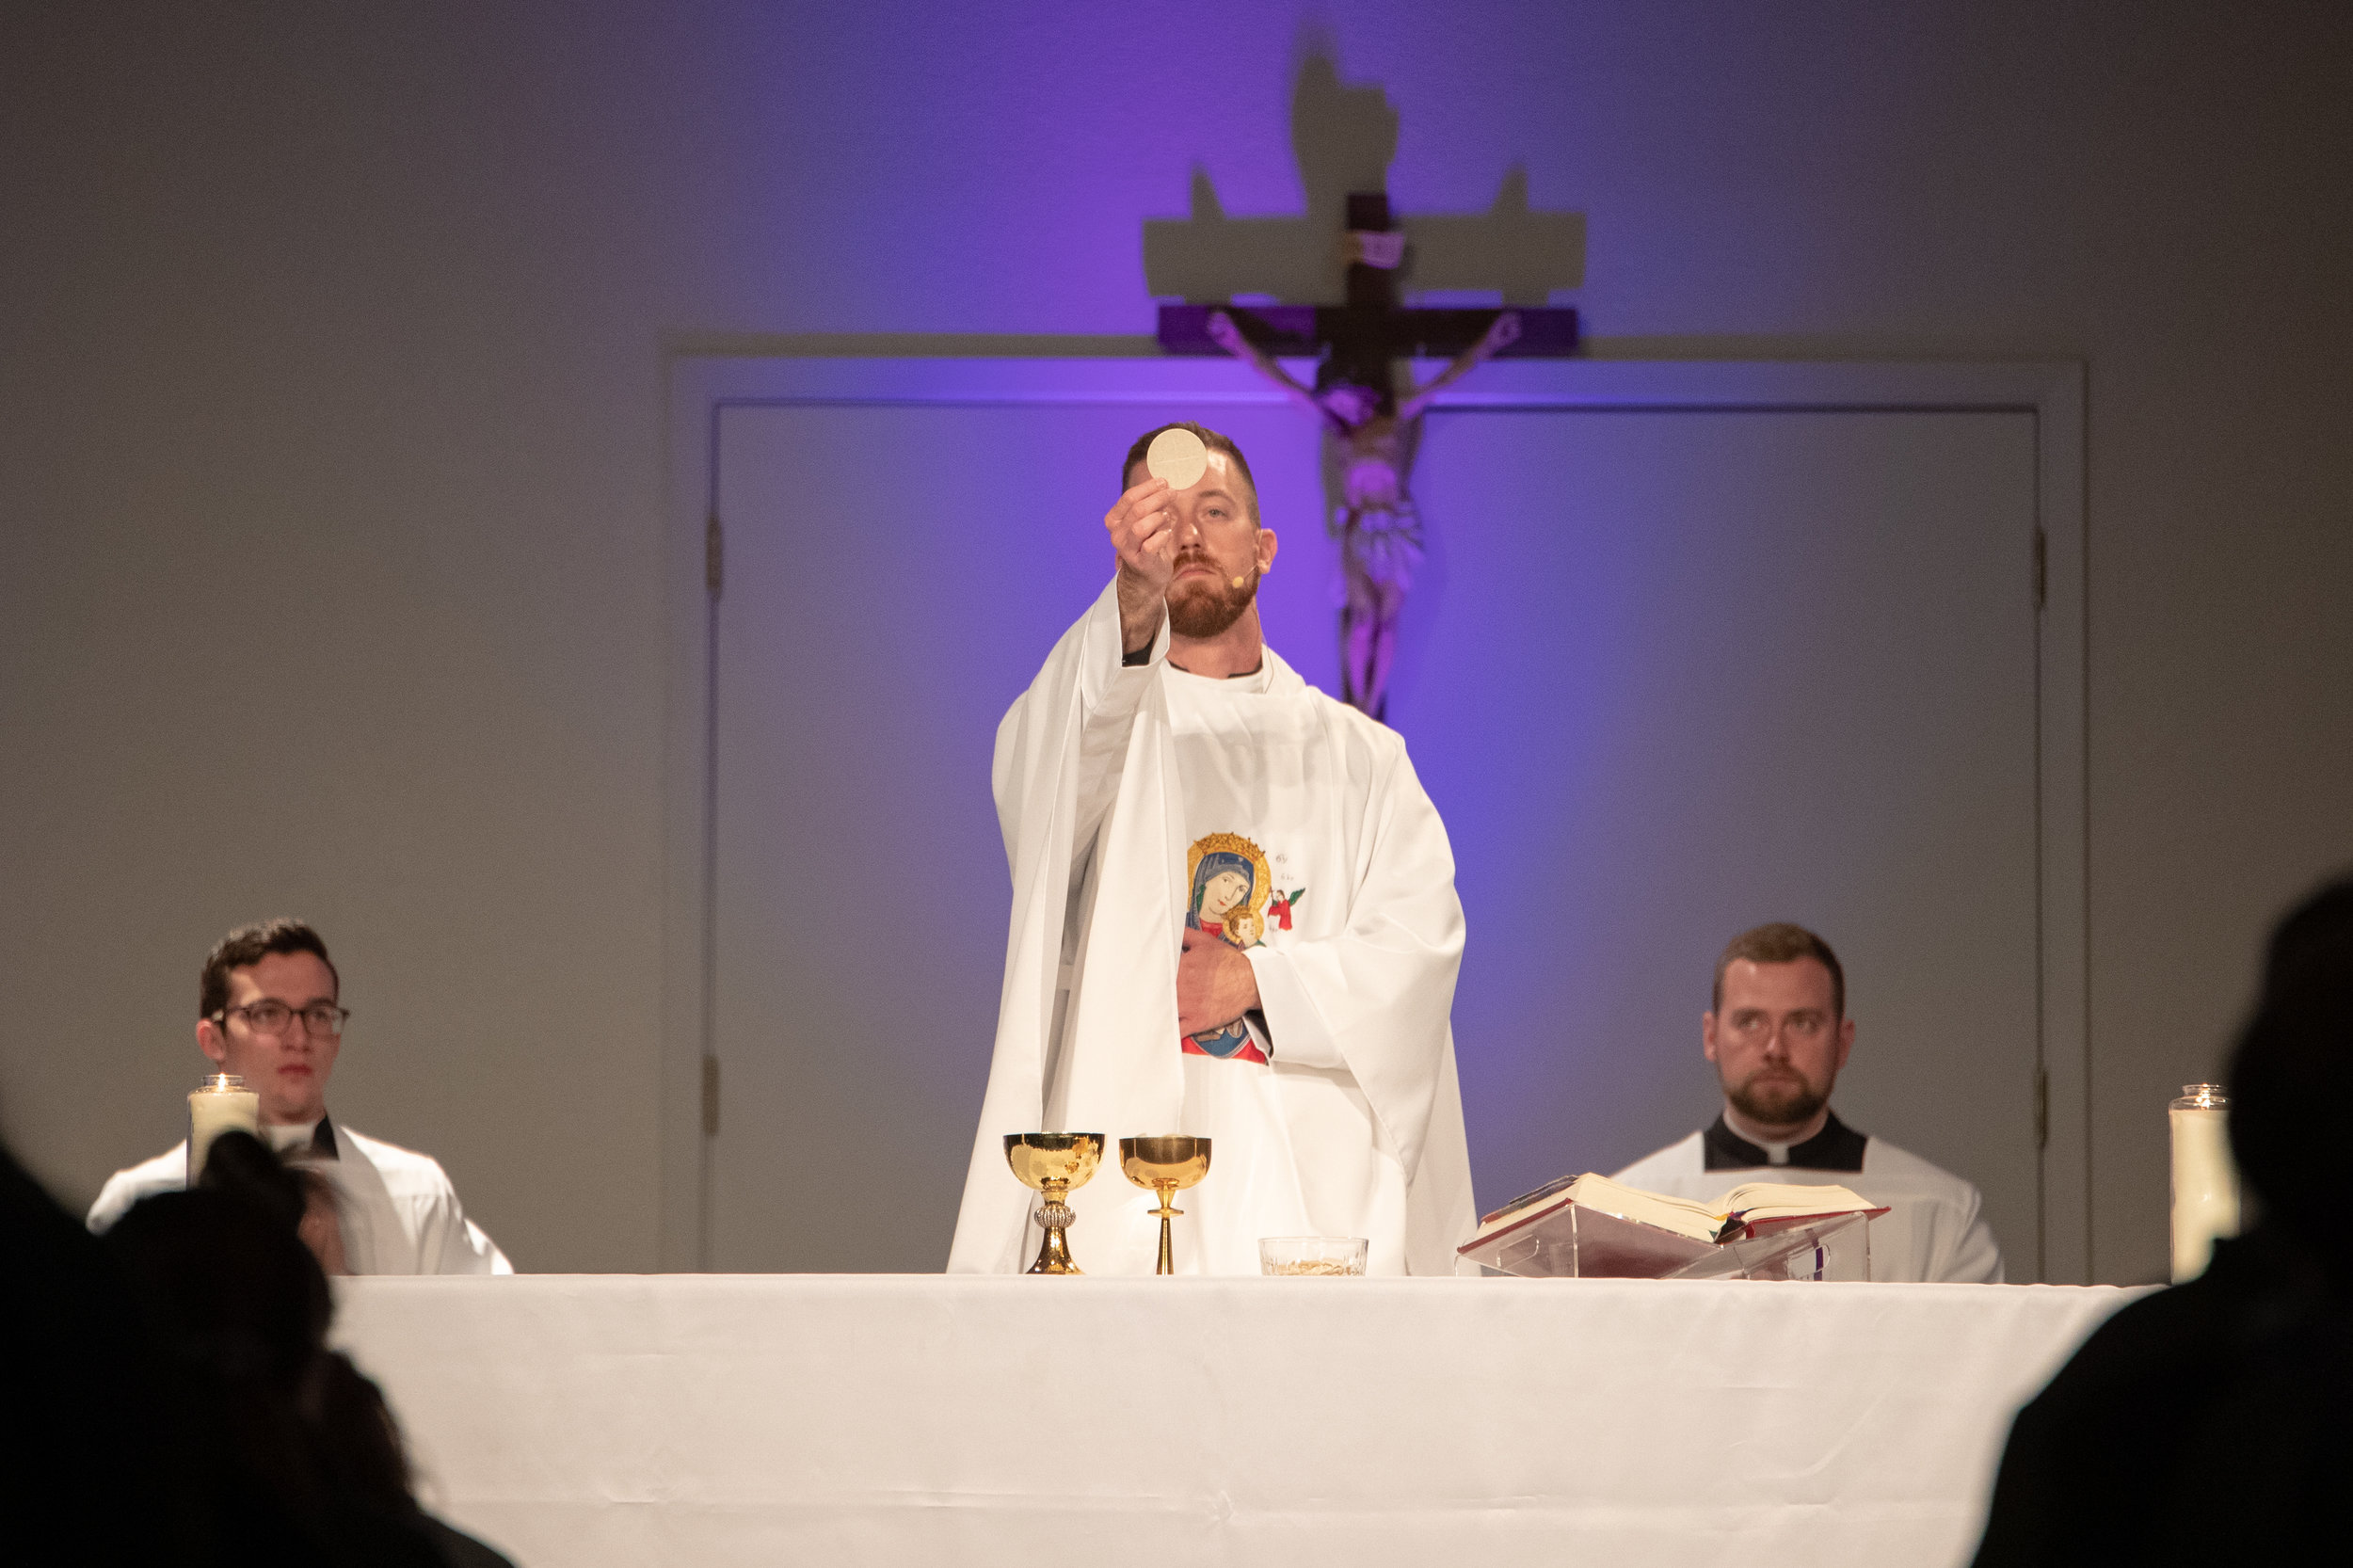 011219ConfirmationRetreat_JB-80.jpg